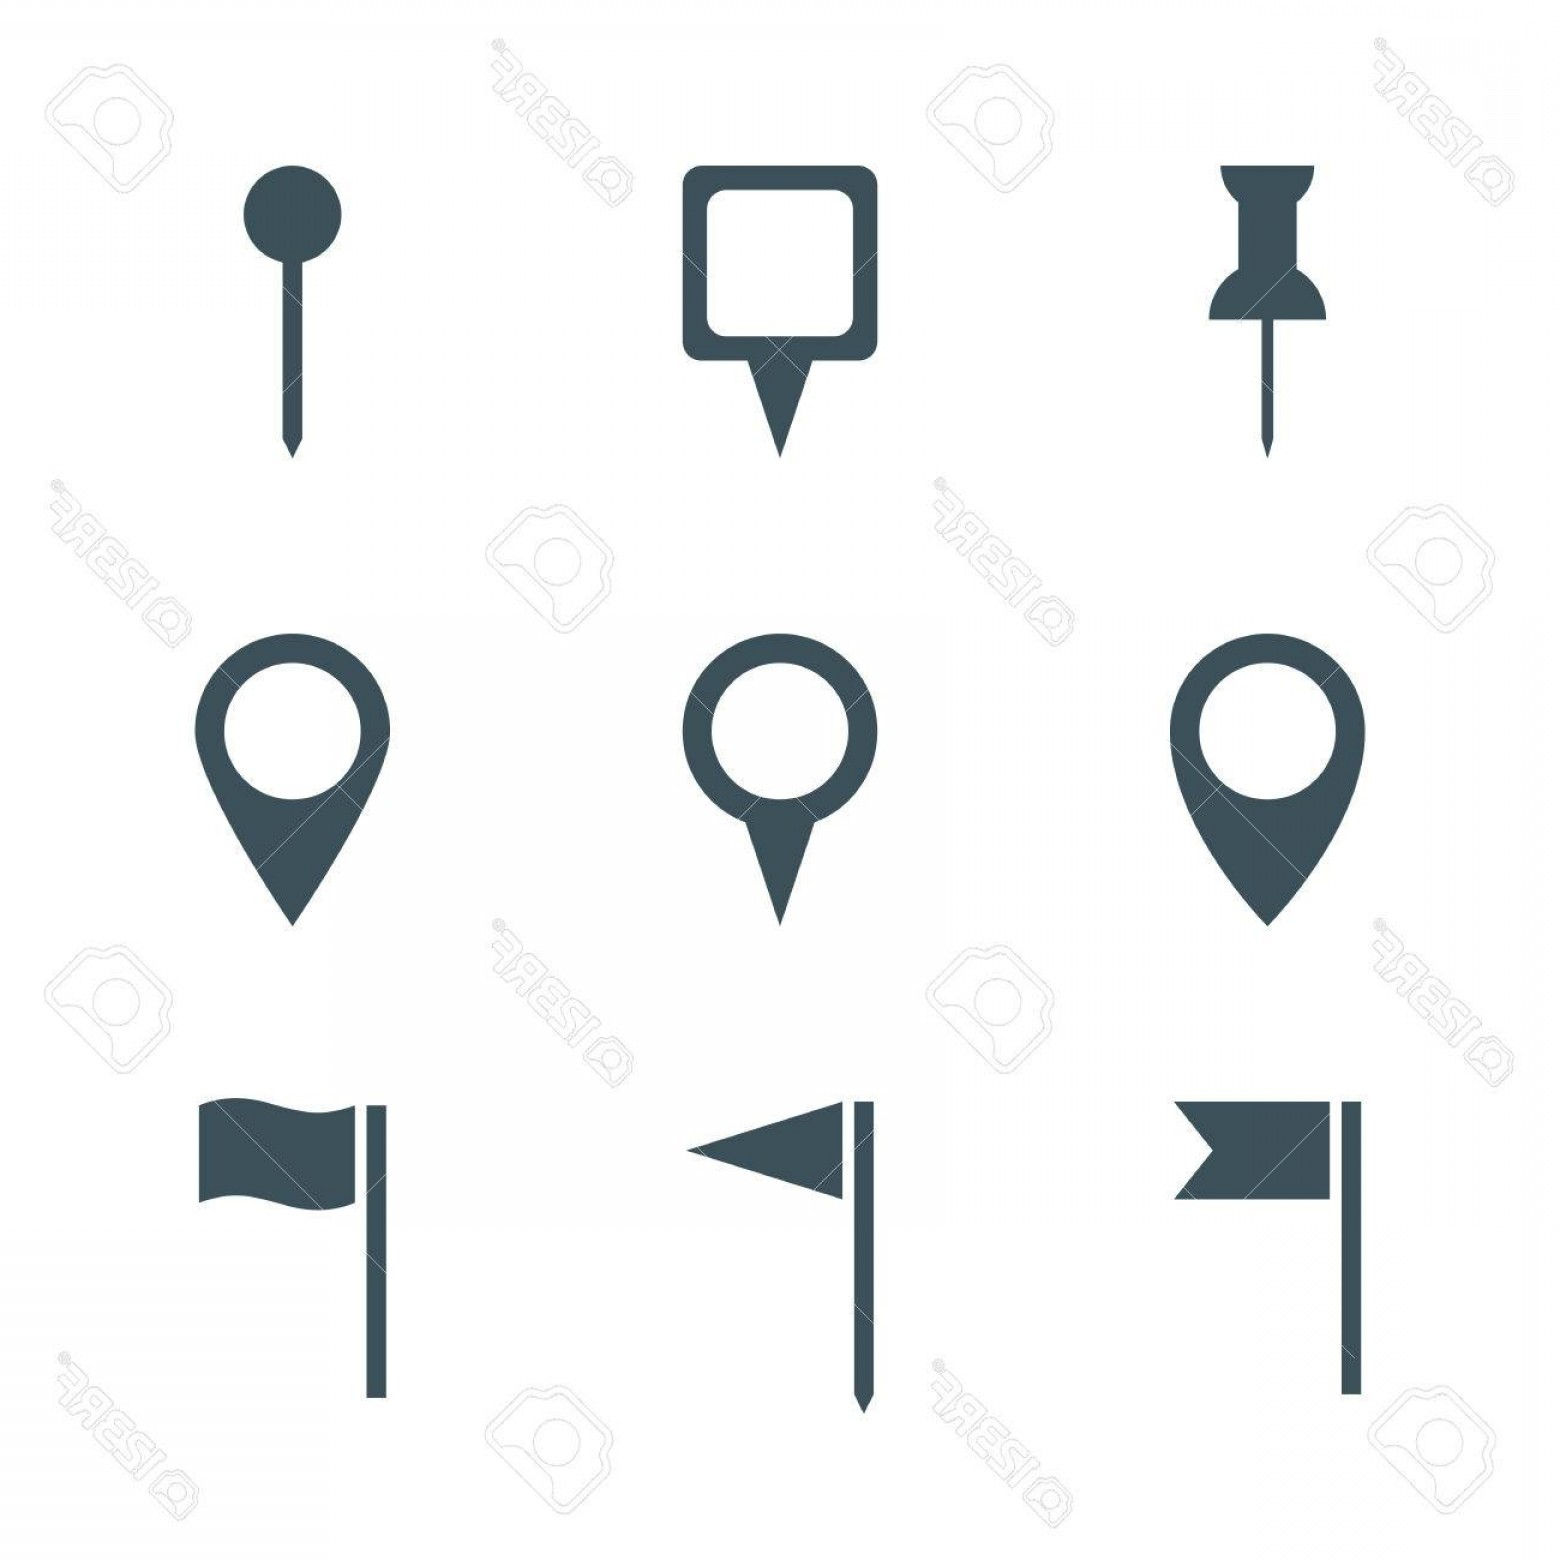 1560x1560 Photostock Vector Map Pin Icon Set Isolated On White Background